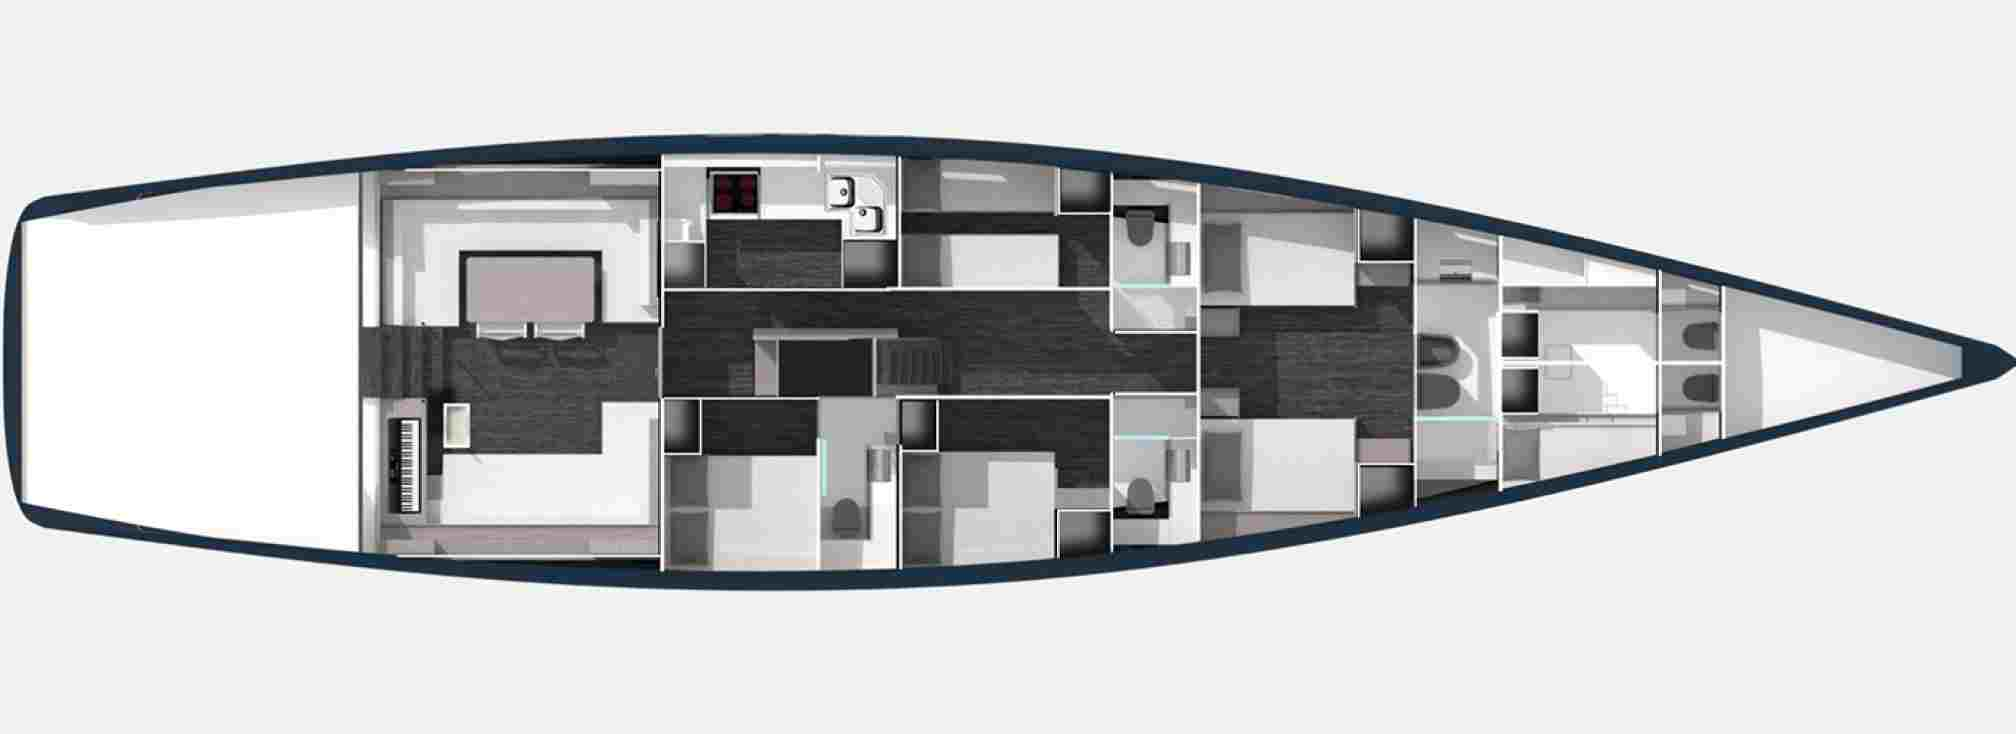 Vismara V80 luxury sailboat charter layout